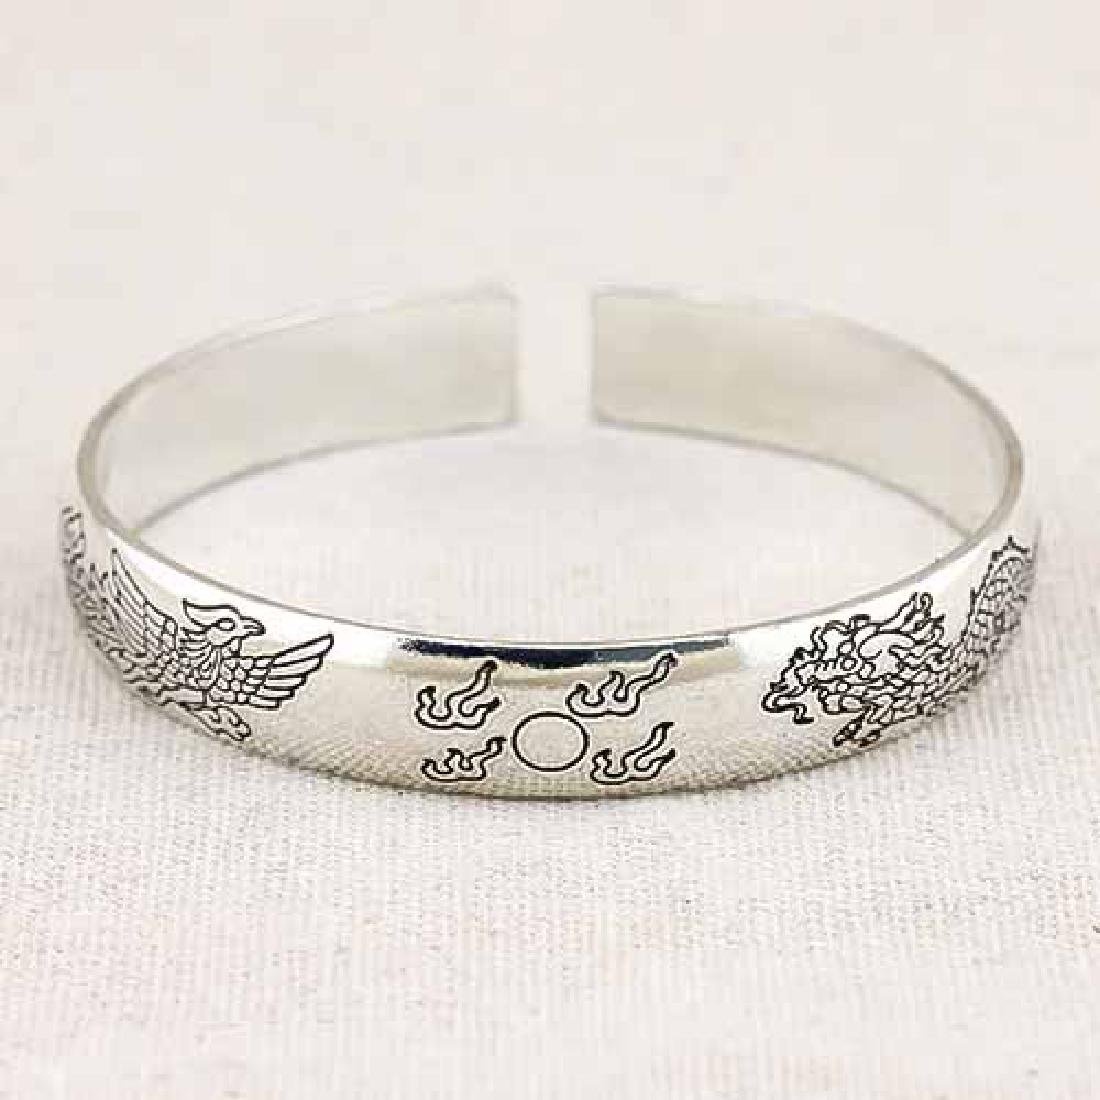 ANTIQUE SILVER ADJUSTABLE DRAGON AND PHOENIX BANGLE